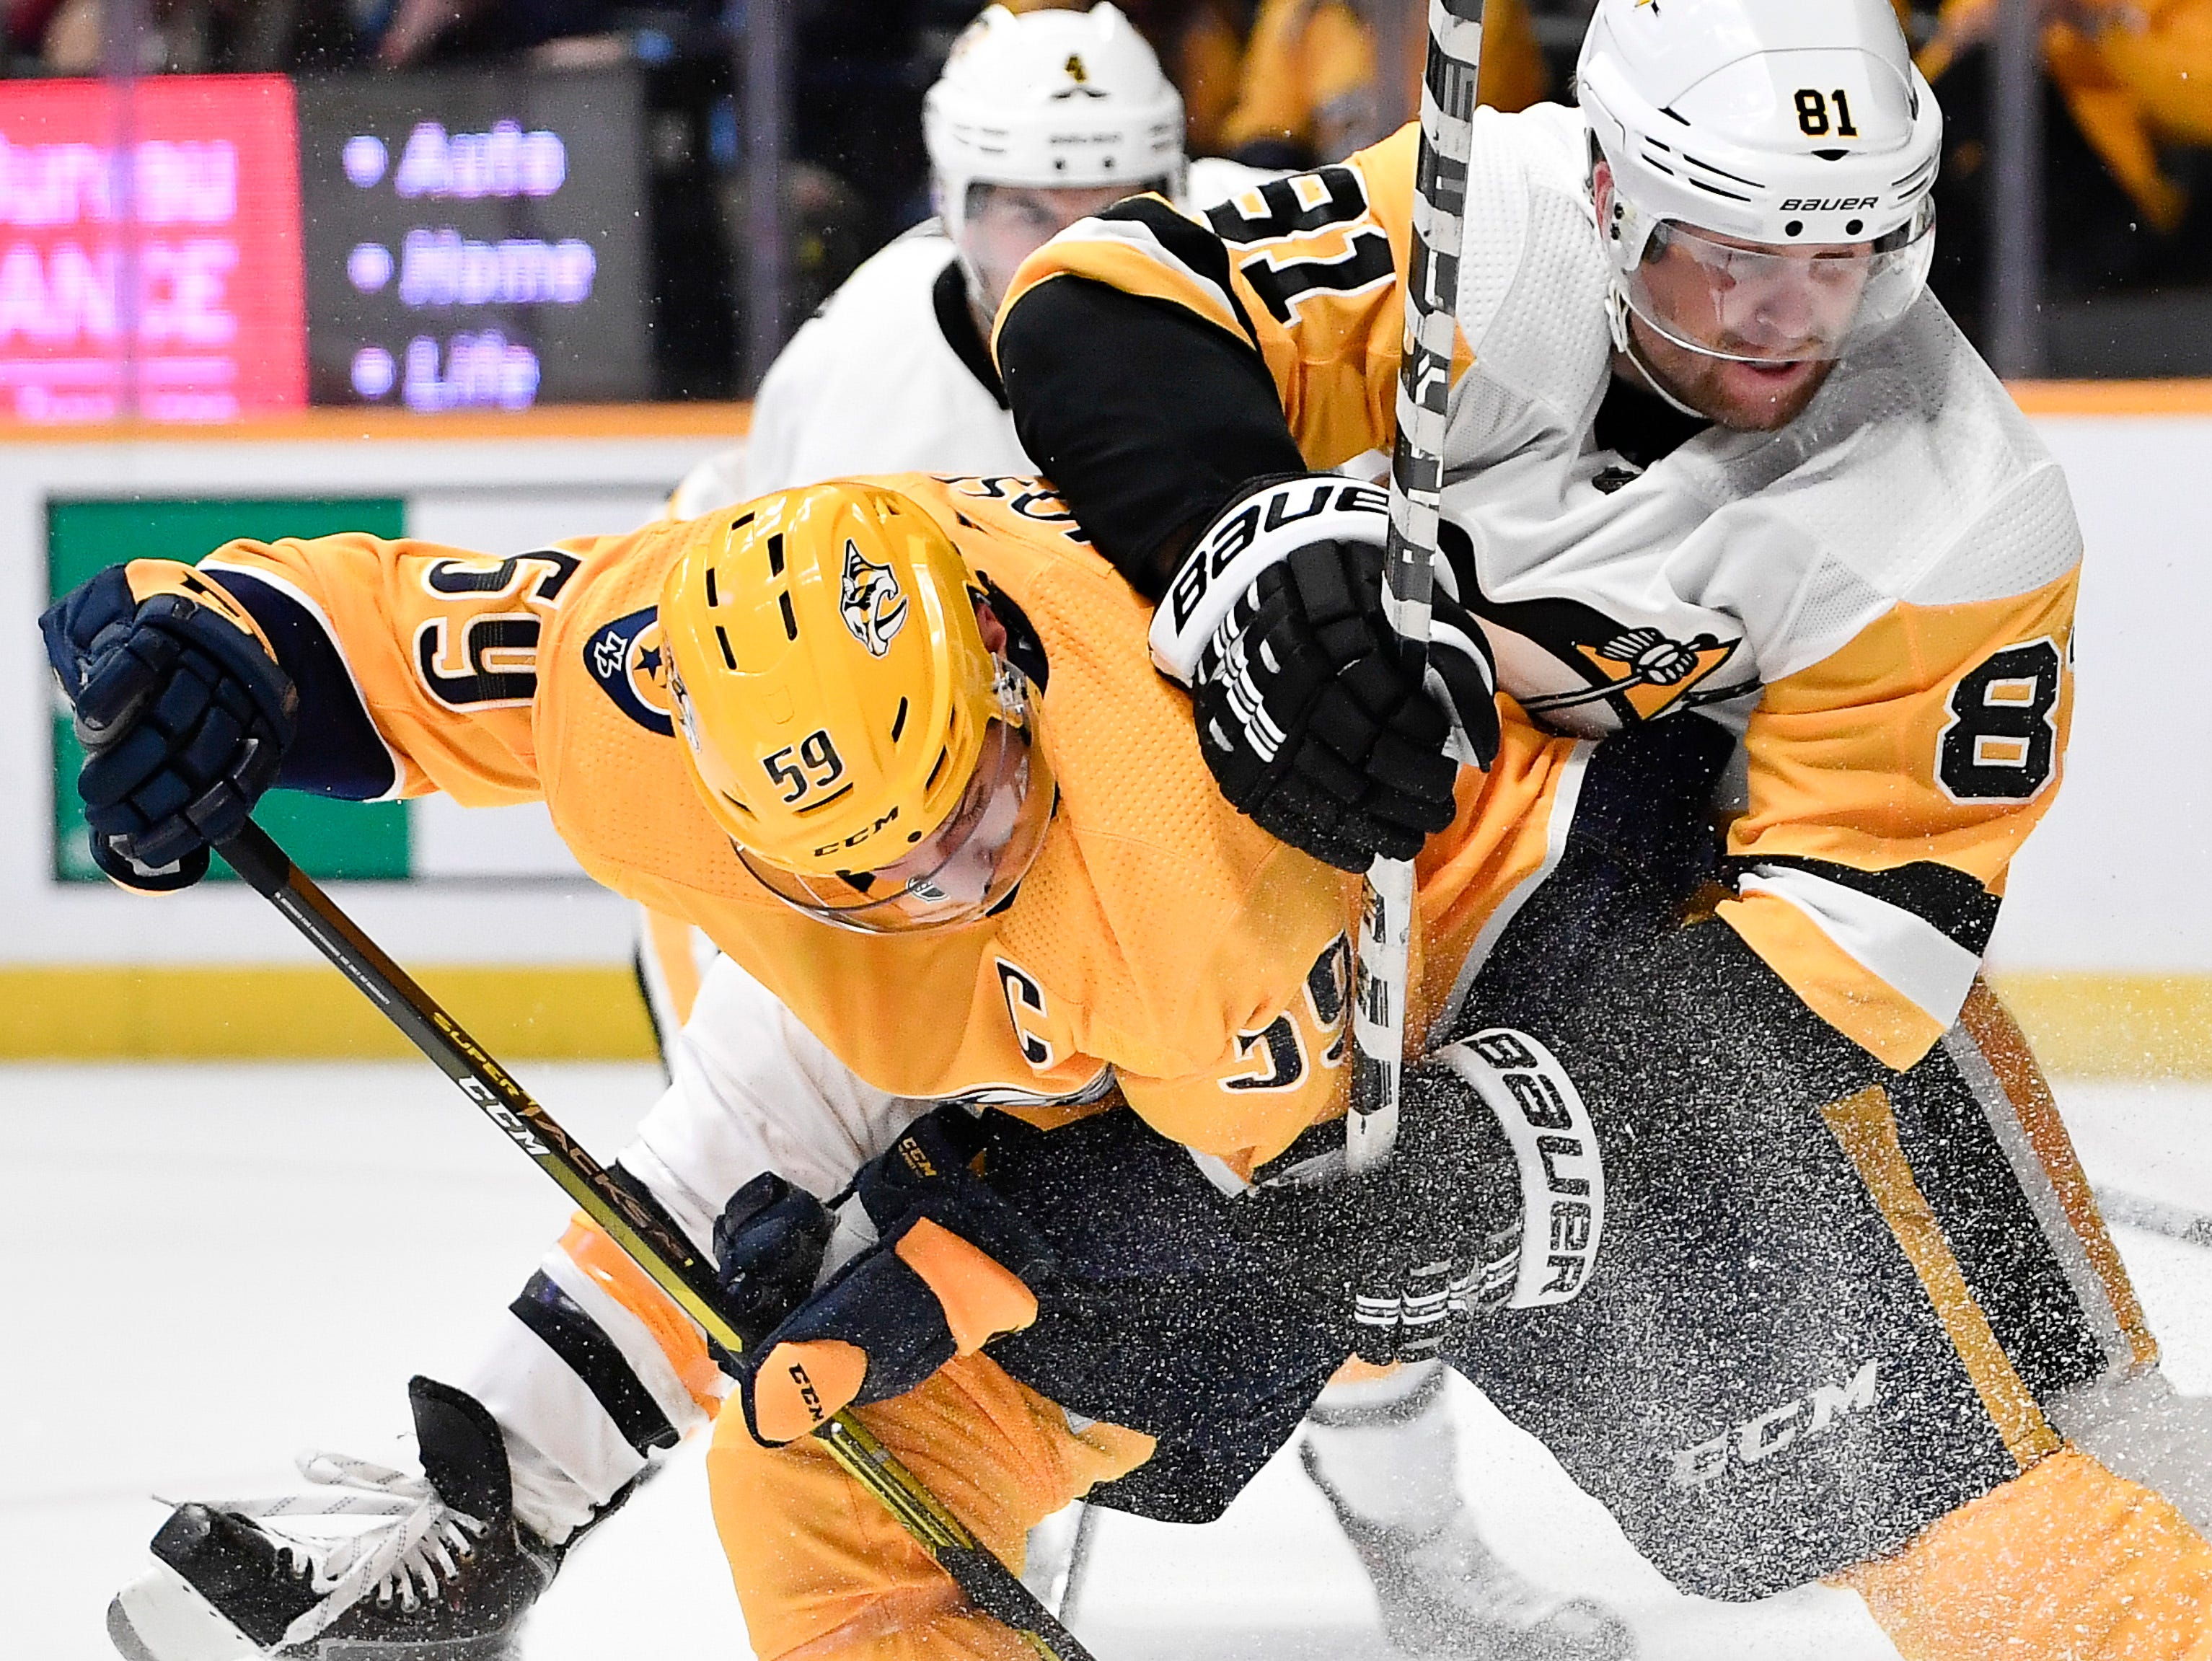 Predators defenseman Roman Josi (59) tries t shoot the puck past Penguins right wing Phil Kessel (81) during the third period at Bridgestone Arena Thursday, March 21, 2019 in Nashville, Tenn.